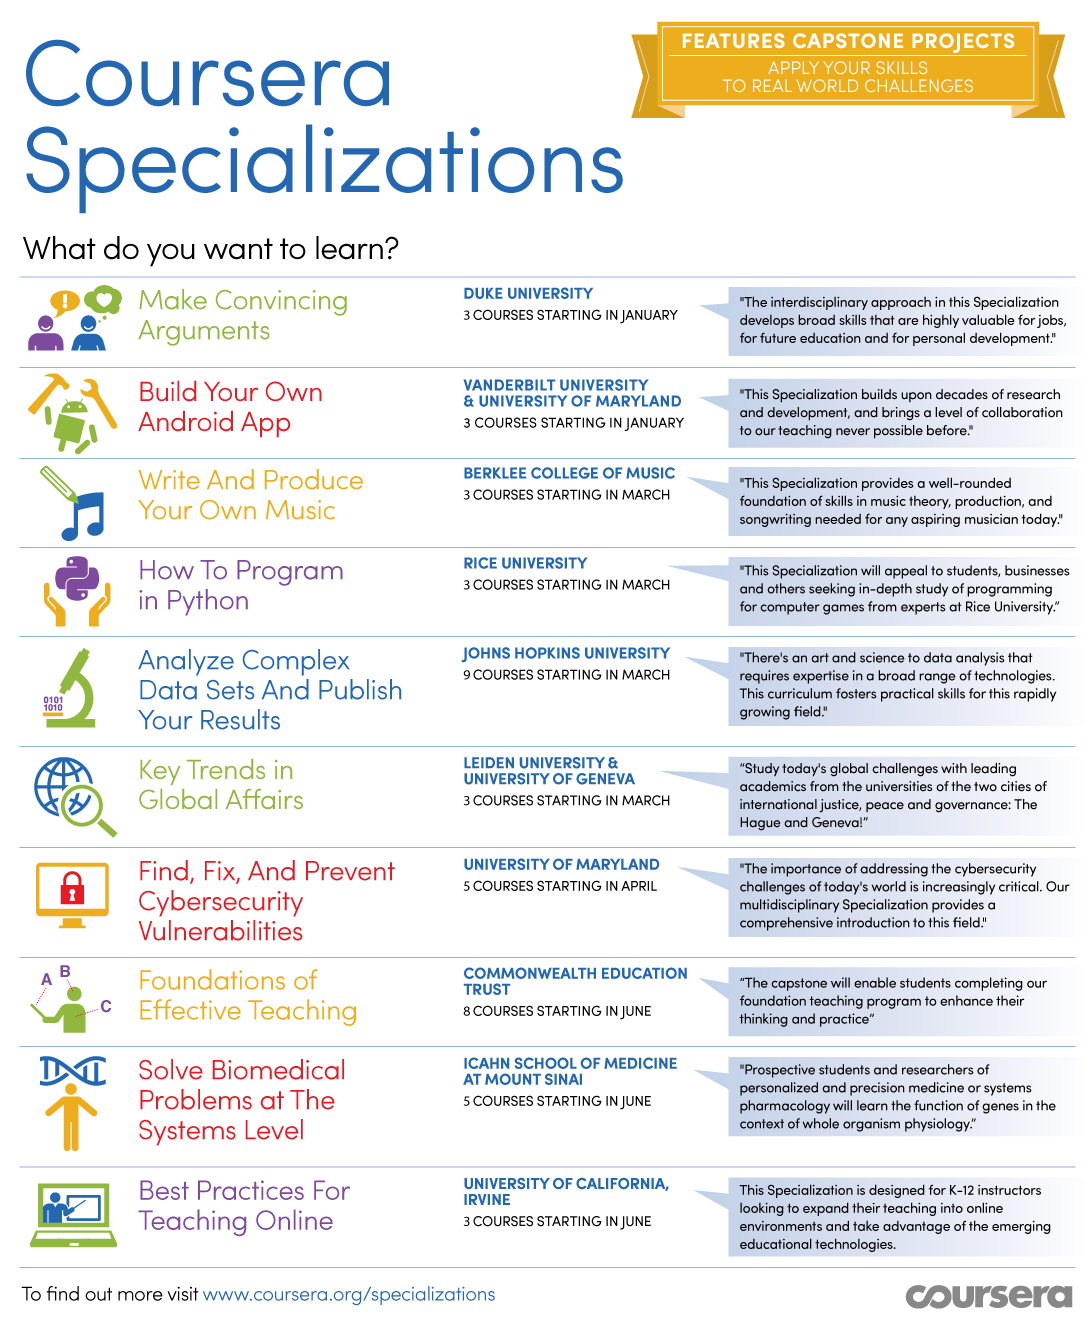 Coursera Specializations Infographic Coursera launches Specializations with 10 universities to offer multi course series for specific subjects